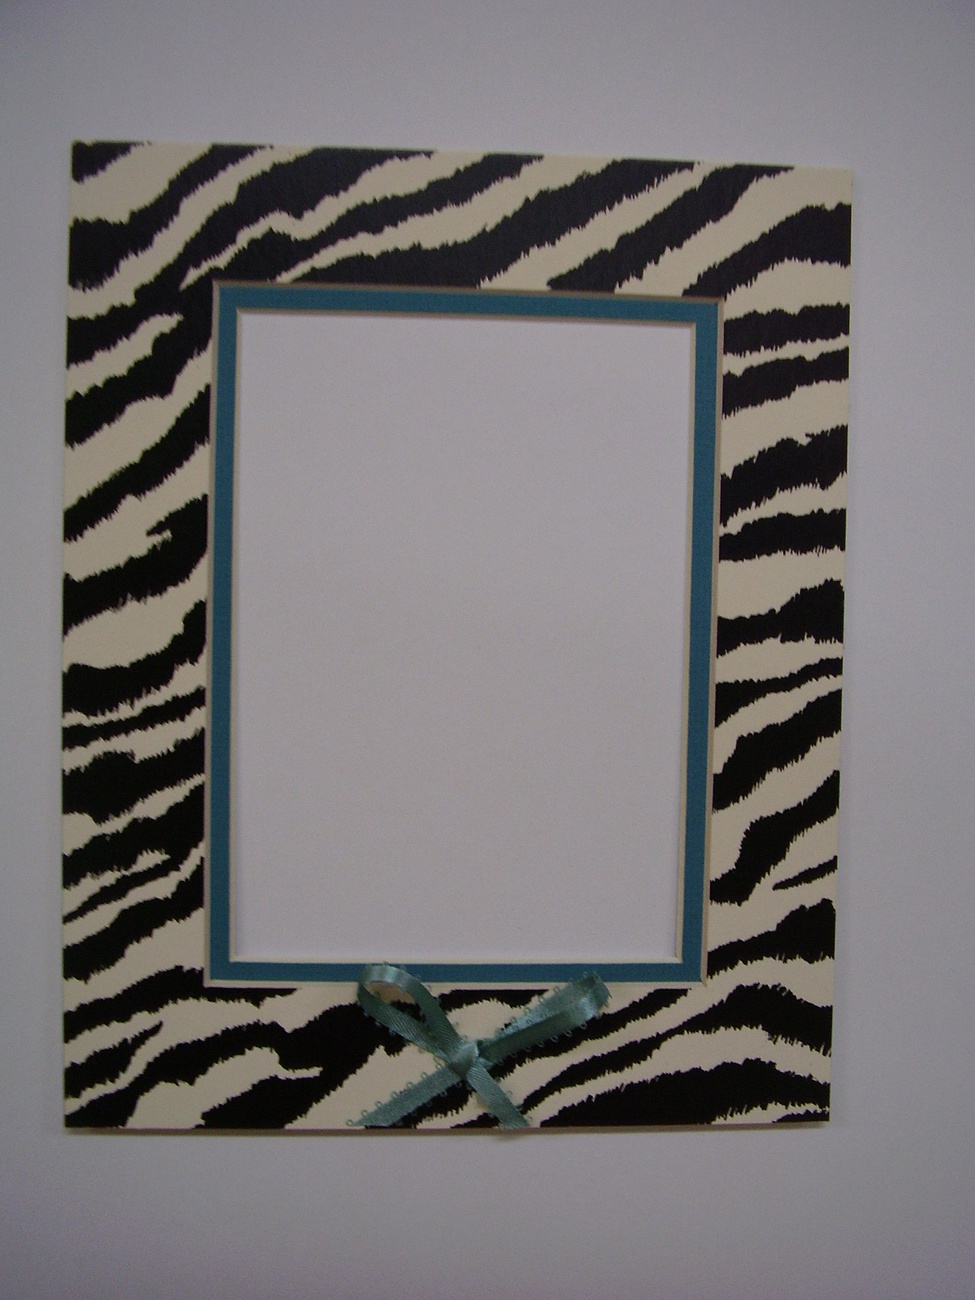 Picture Framing Mat 8x10 for 5x7 photo Zebra Stripe Black White with turquoise b